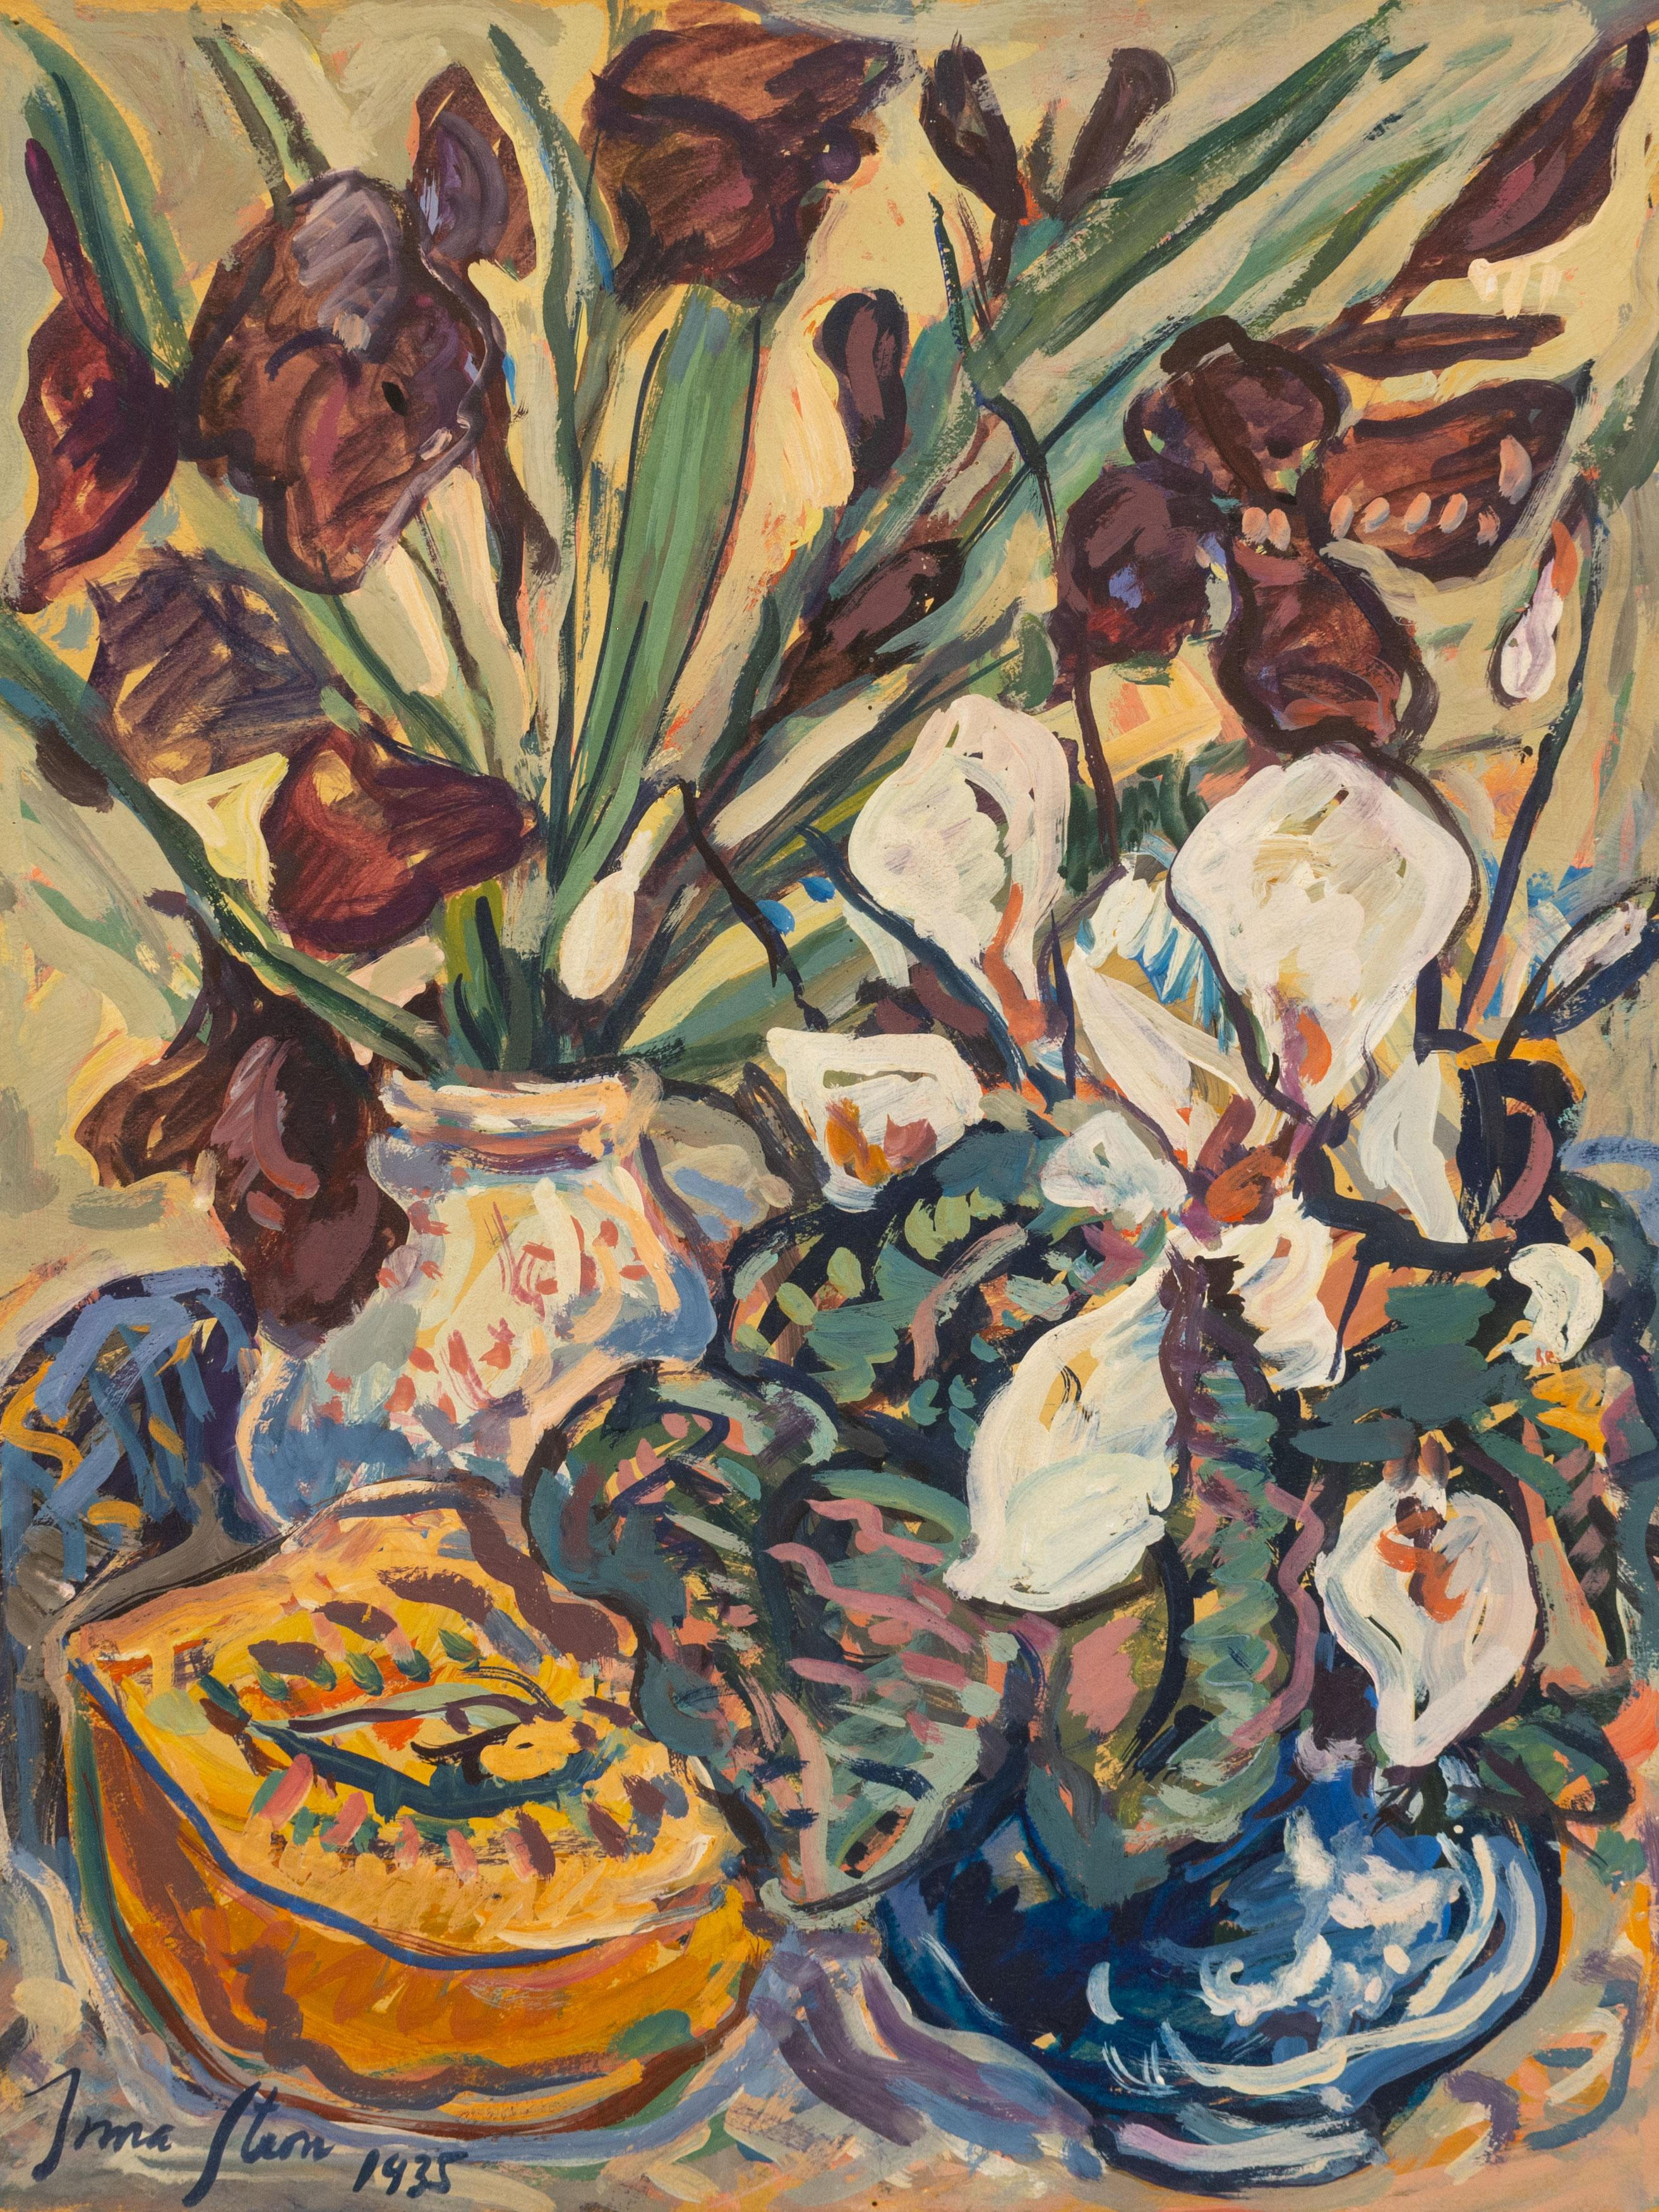 """Irma Stern (SA 1894 - 1966) Gouache & Tempera, """"Still Life with Gladiolii, Irises & Paw-Paw"""", Signed & Dated 1935, 45 x 35"""